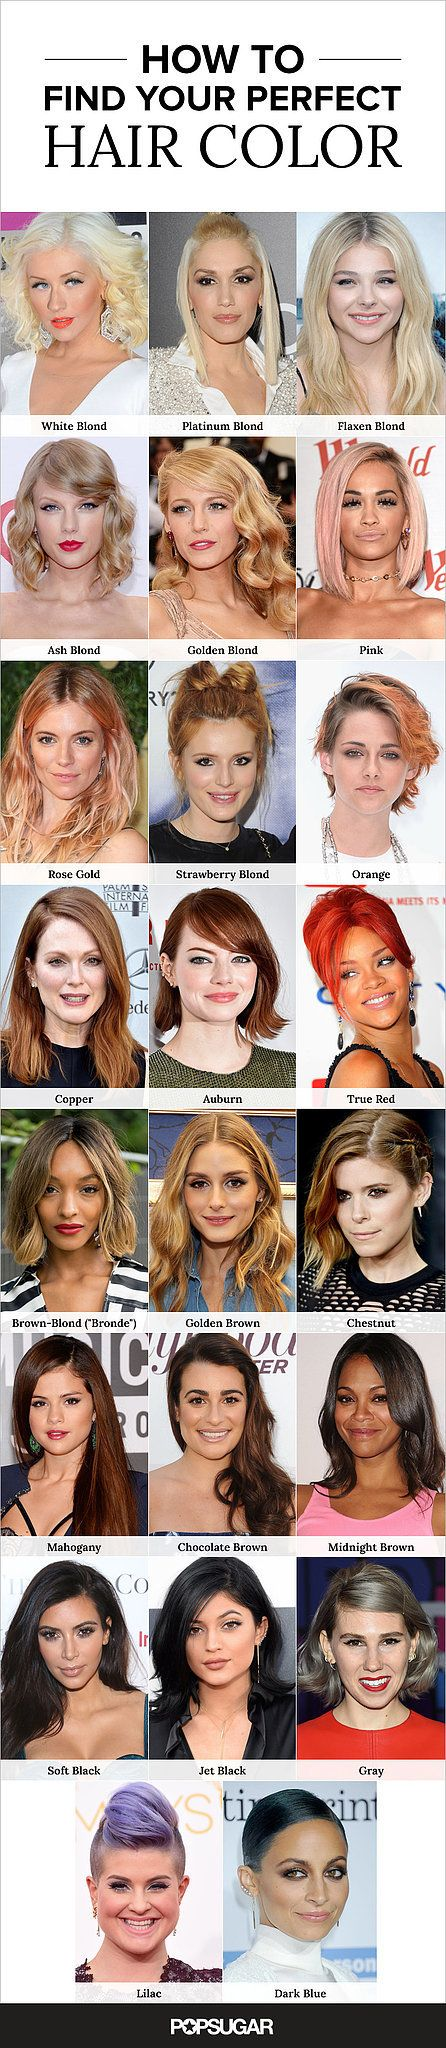 From the brightest blond to the darkest brunette, our hair-color guide covers them all.